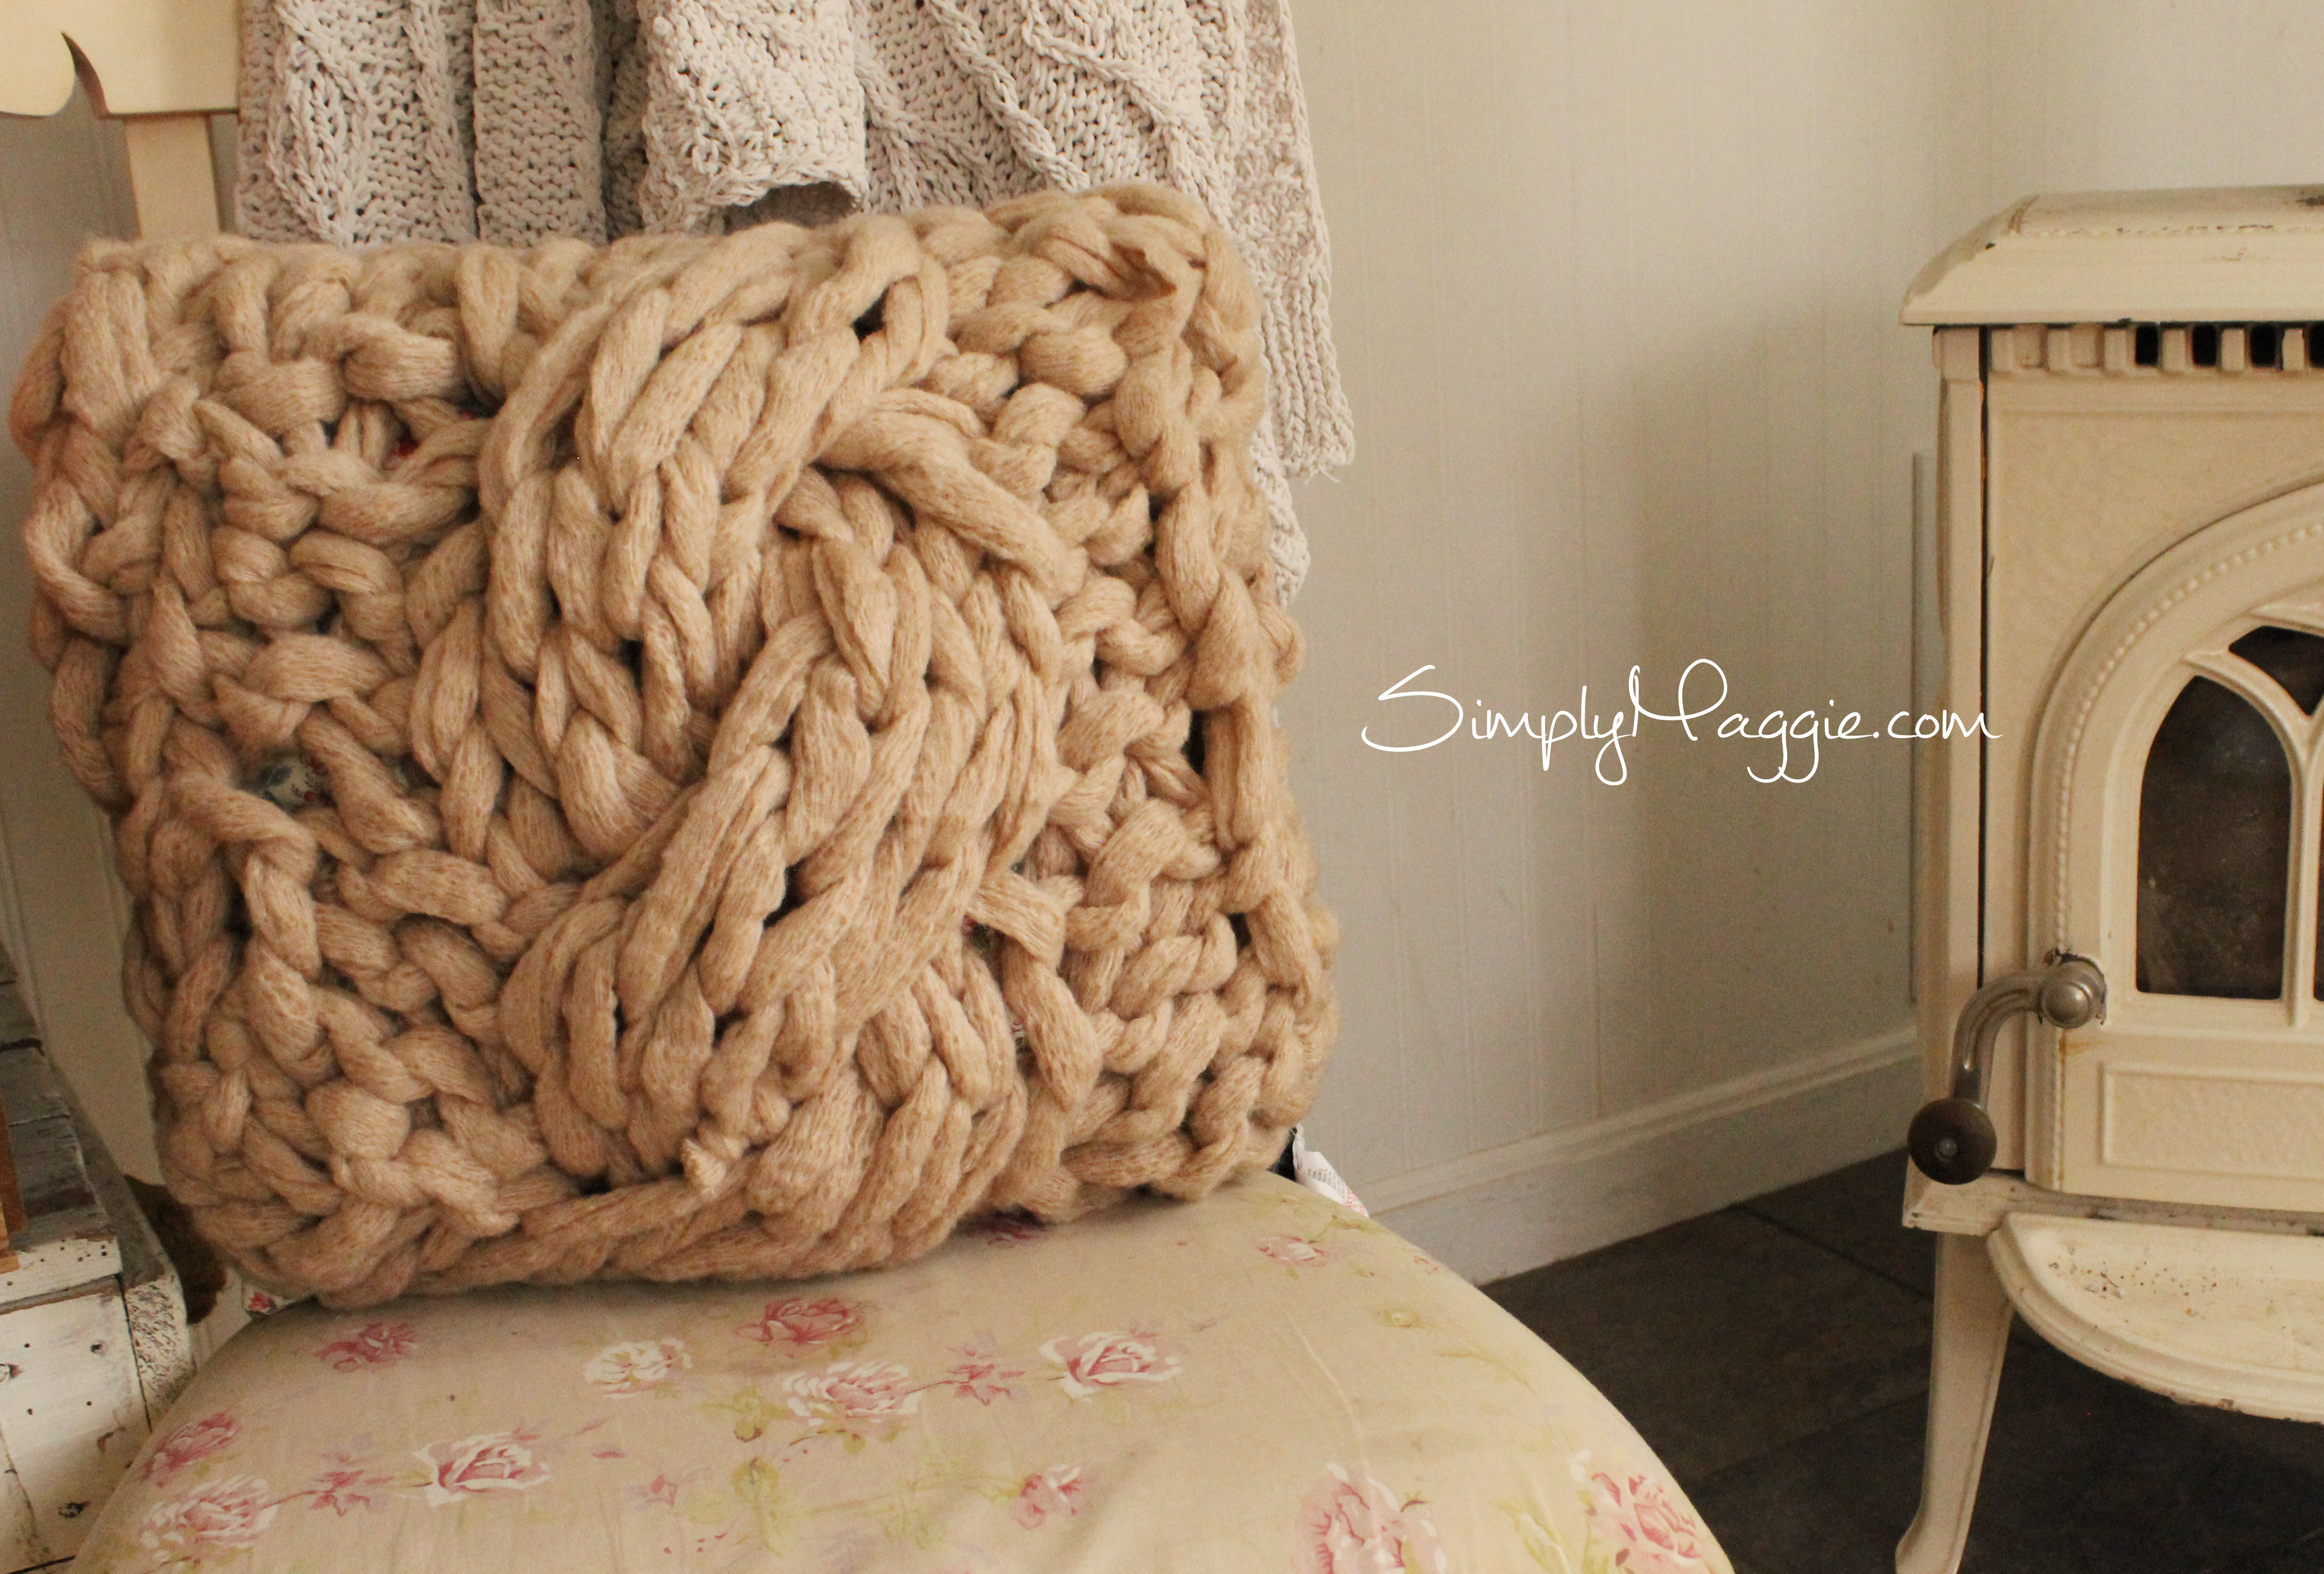 How To Arm Knit The Cable Stitch With Pillow Patterns  Simplymaggie